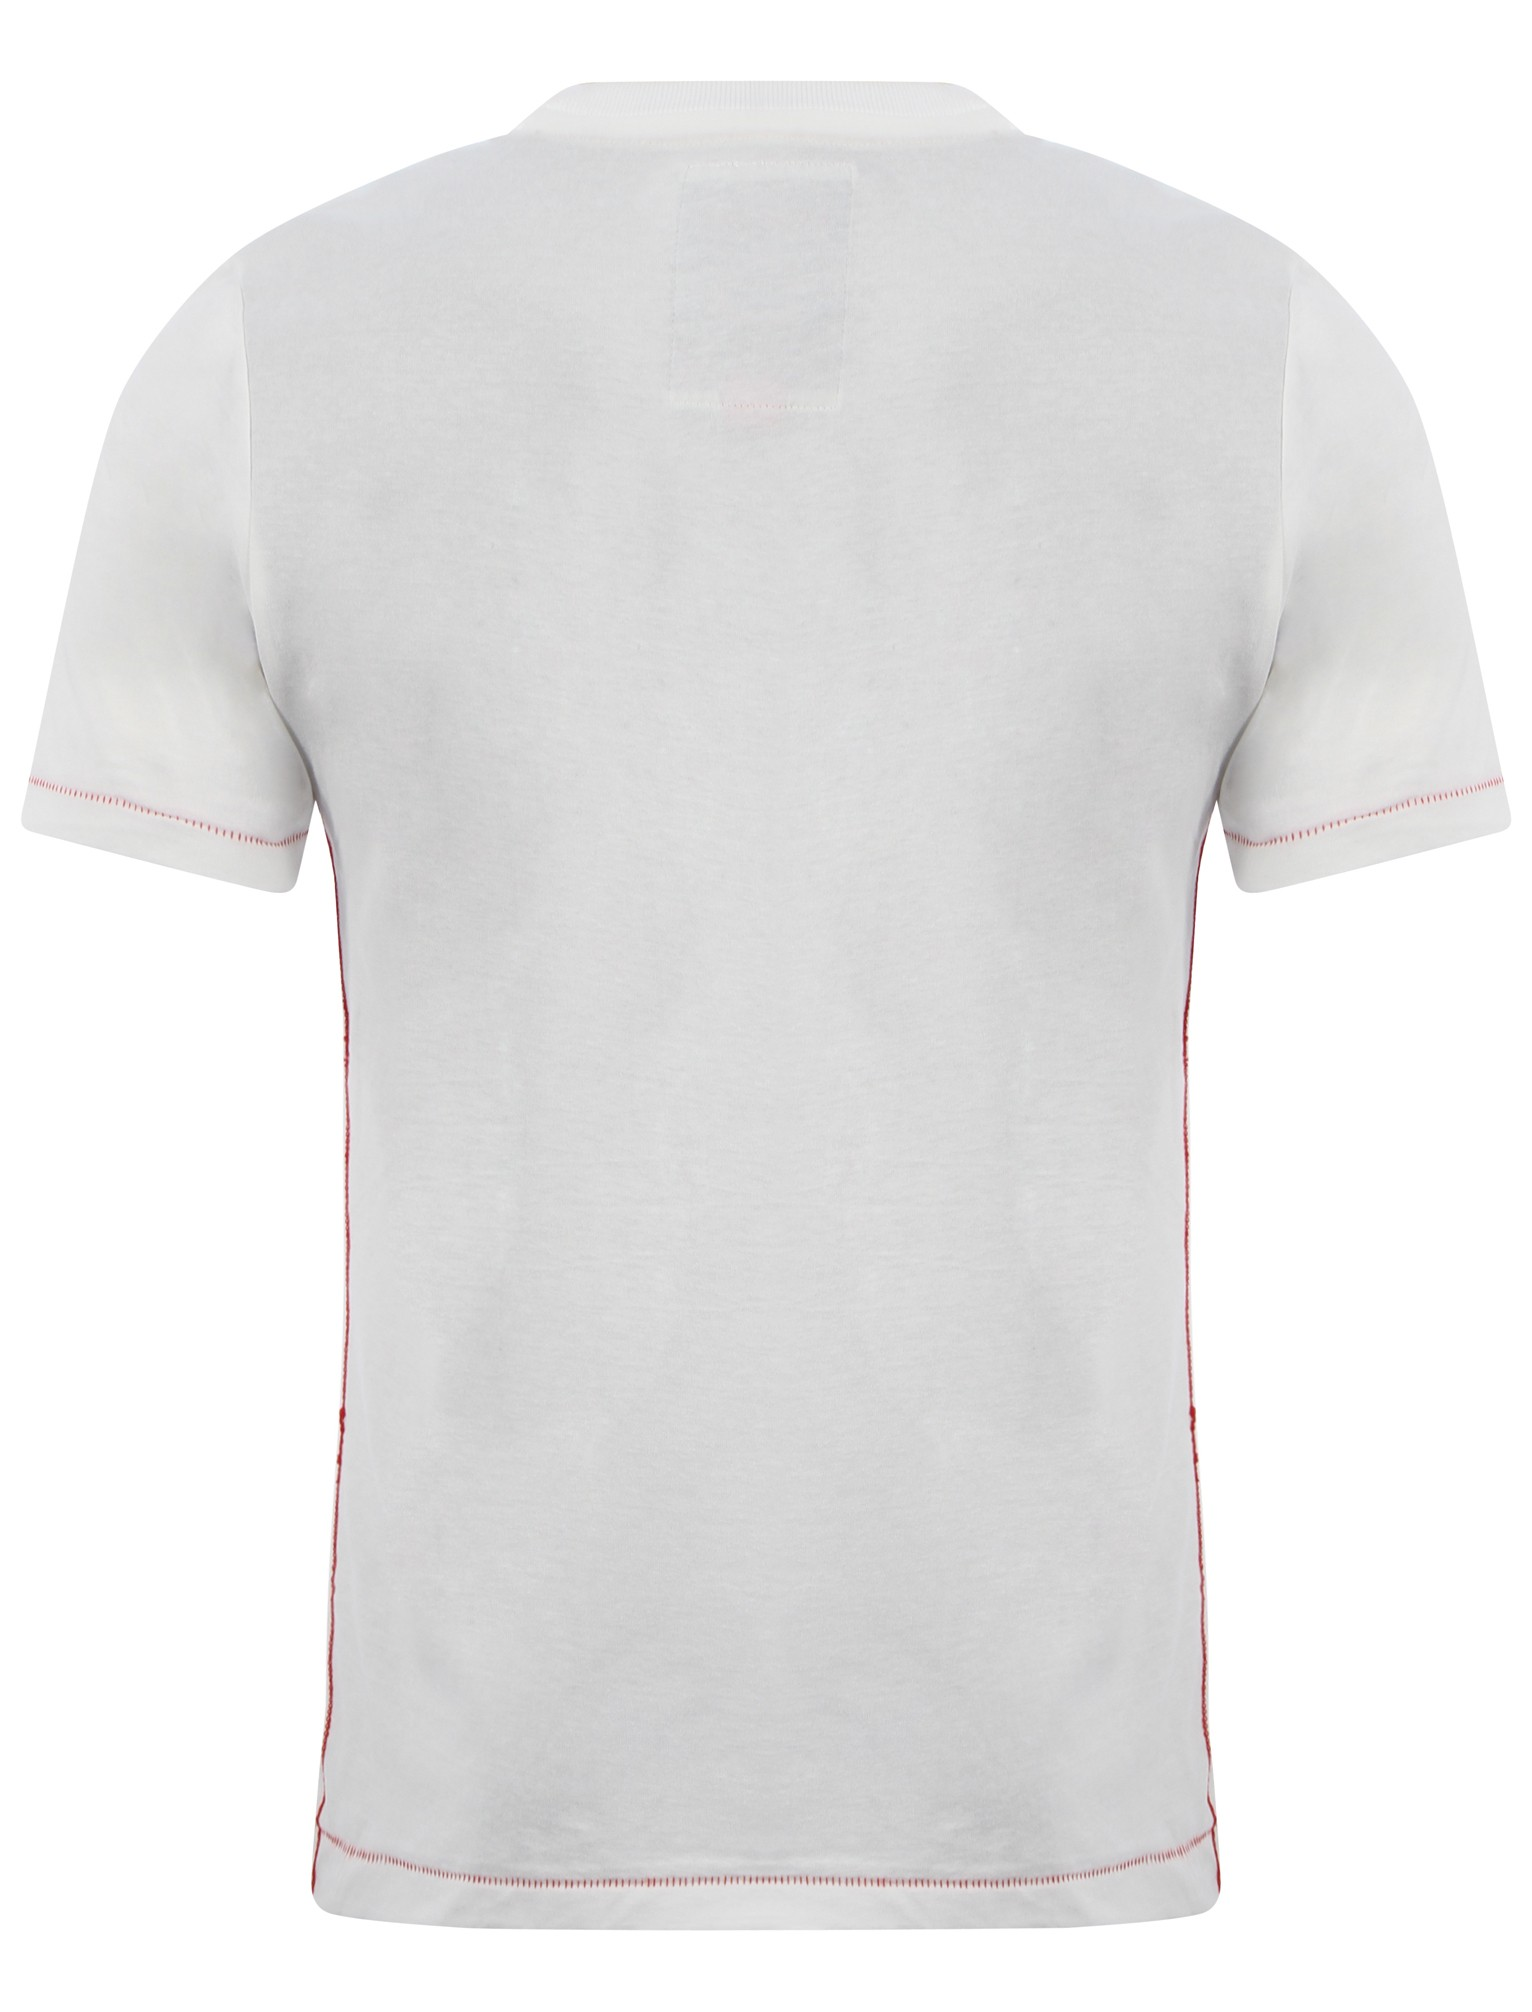 Tokyo-Laundry-Sommer-Brandung-laessige-T-Shirt-Groesse-S-XL